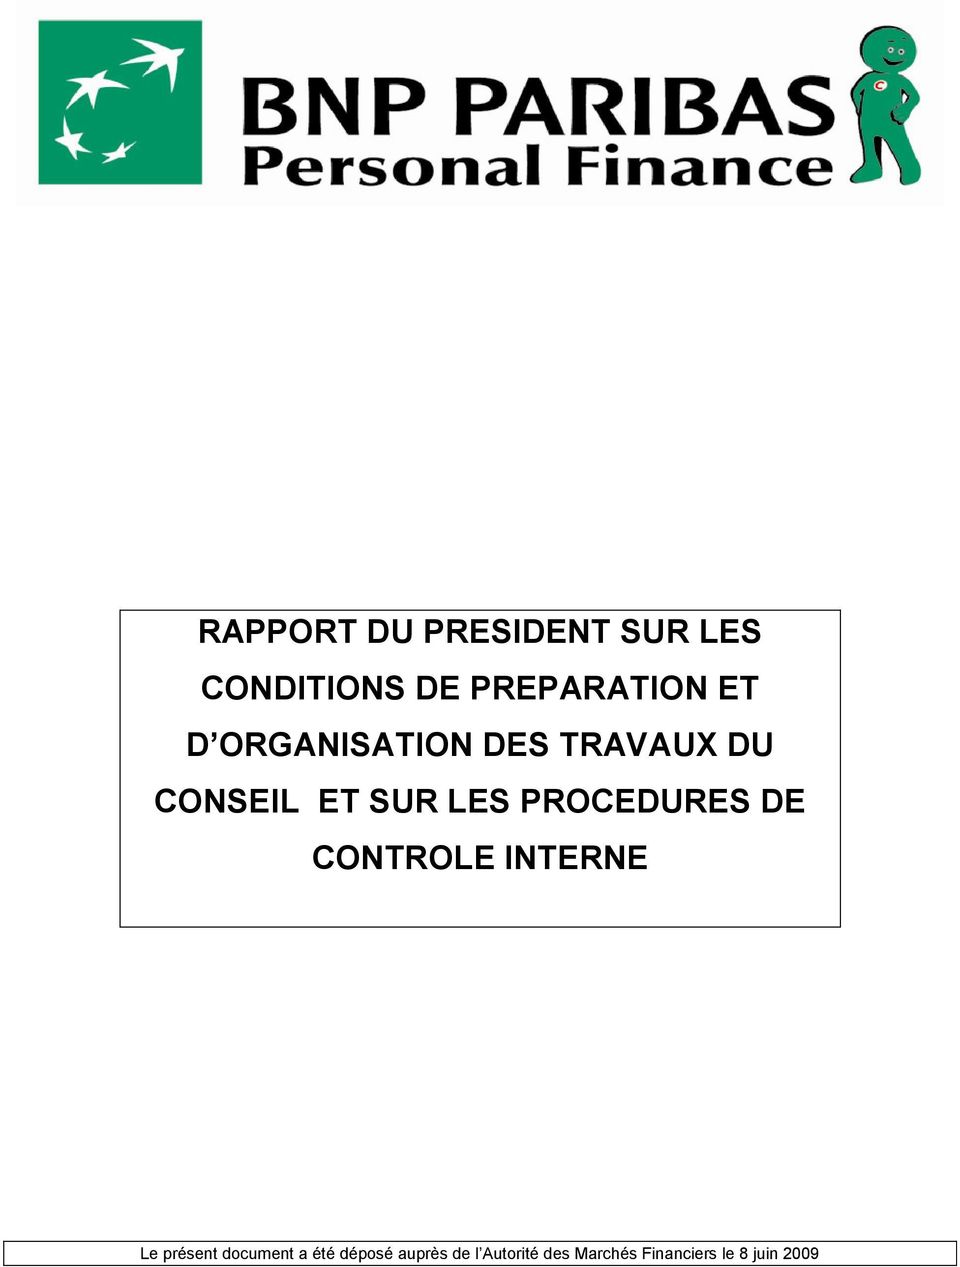 PROCEDURES DE CONTROLE INTERNE Le présent document a été